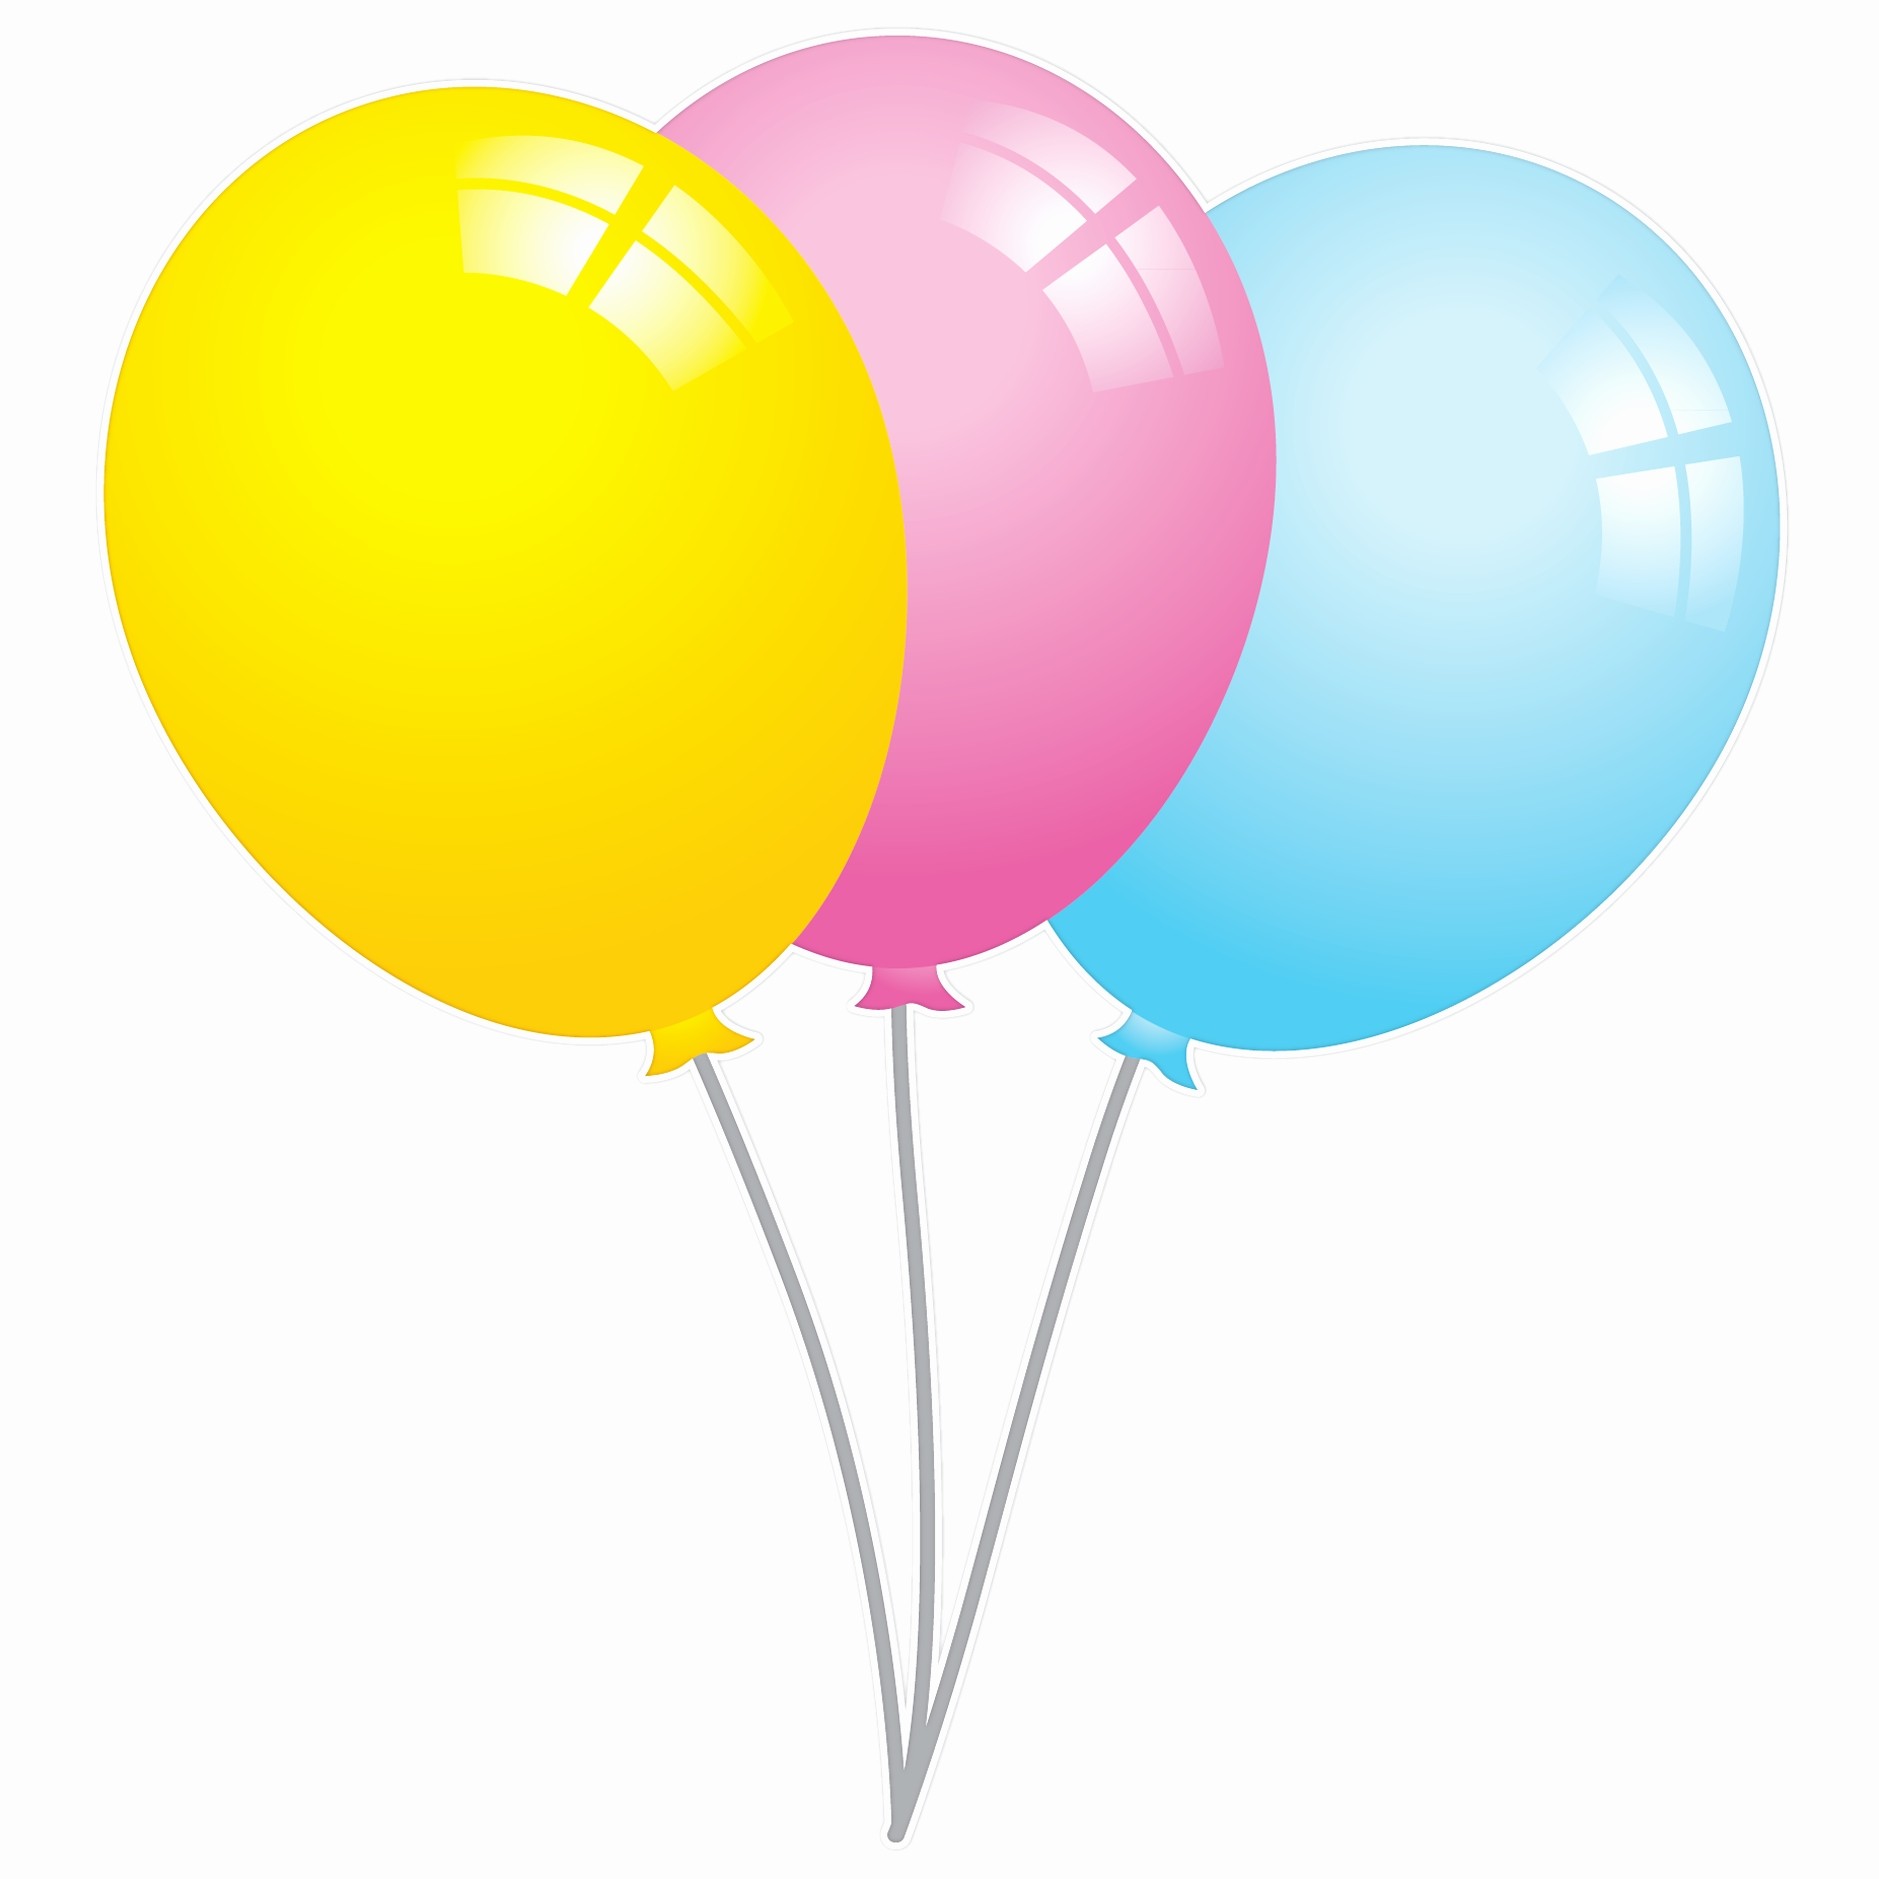 Happy Birthday Images Balloons Awesome Balloon Emoji Background